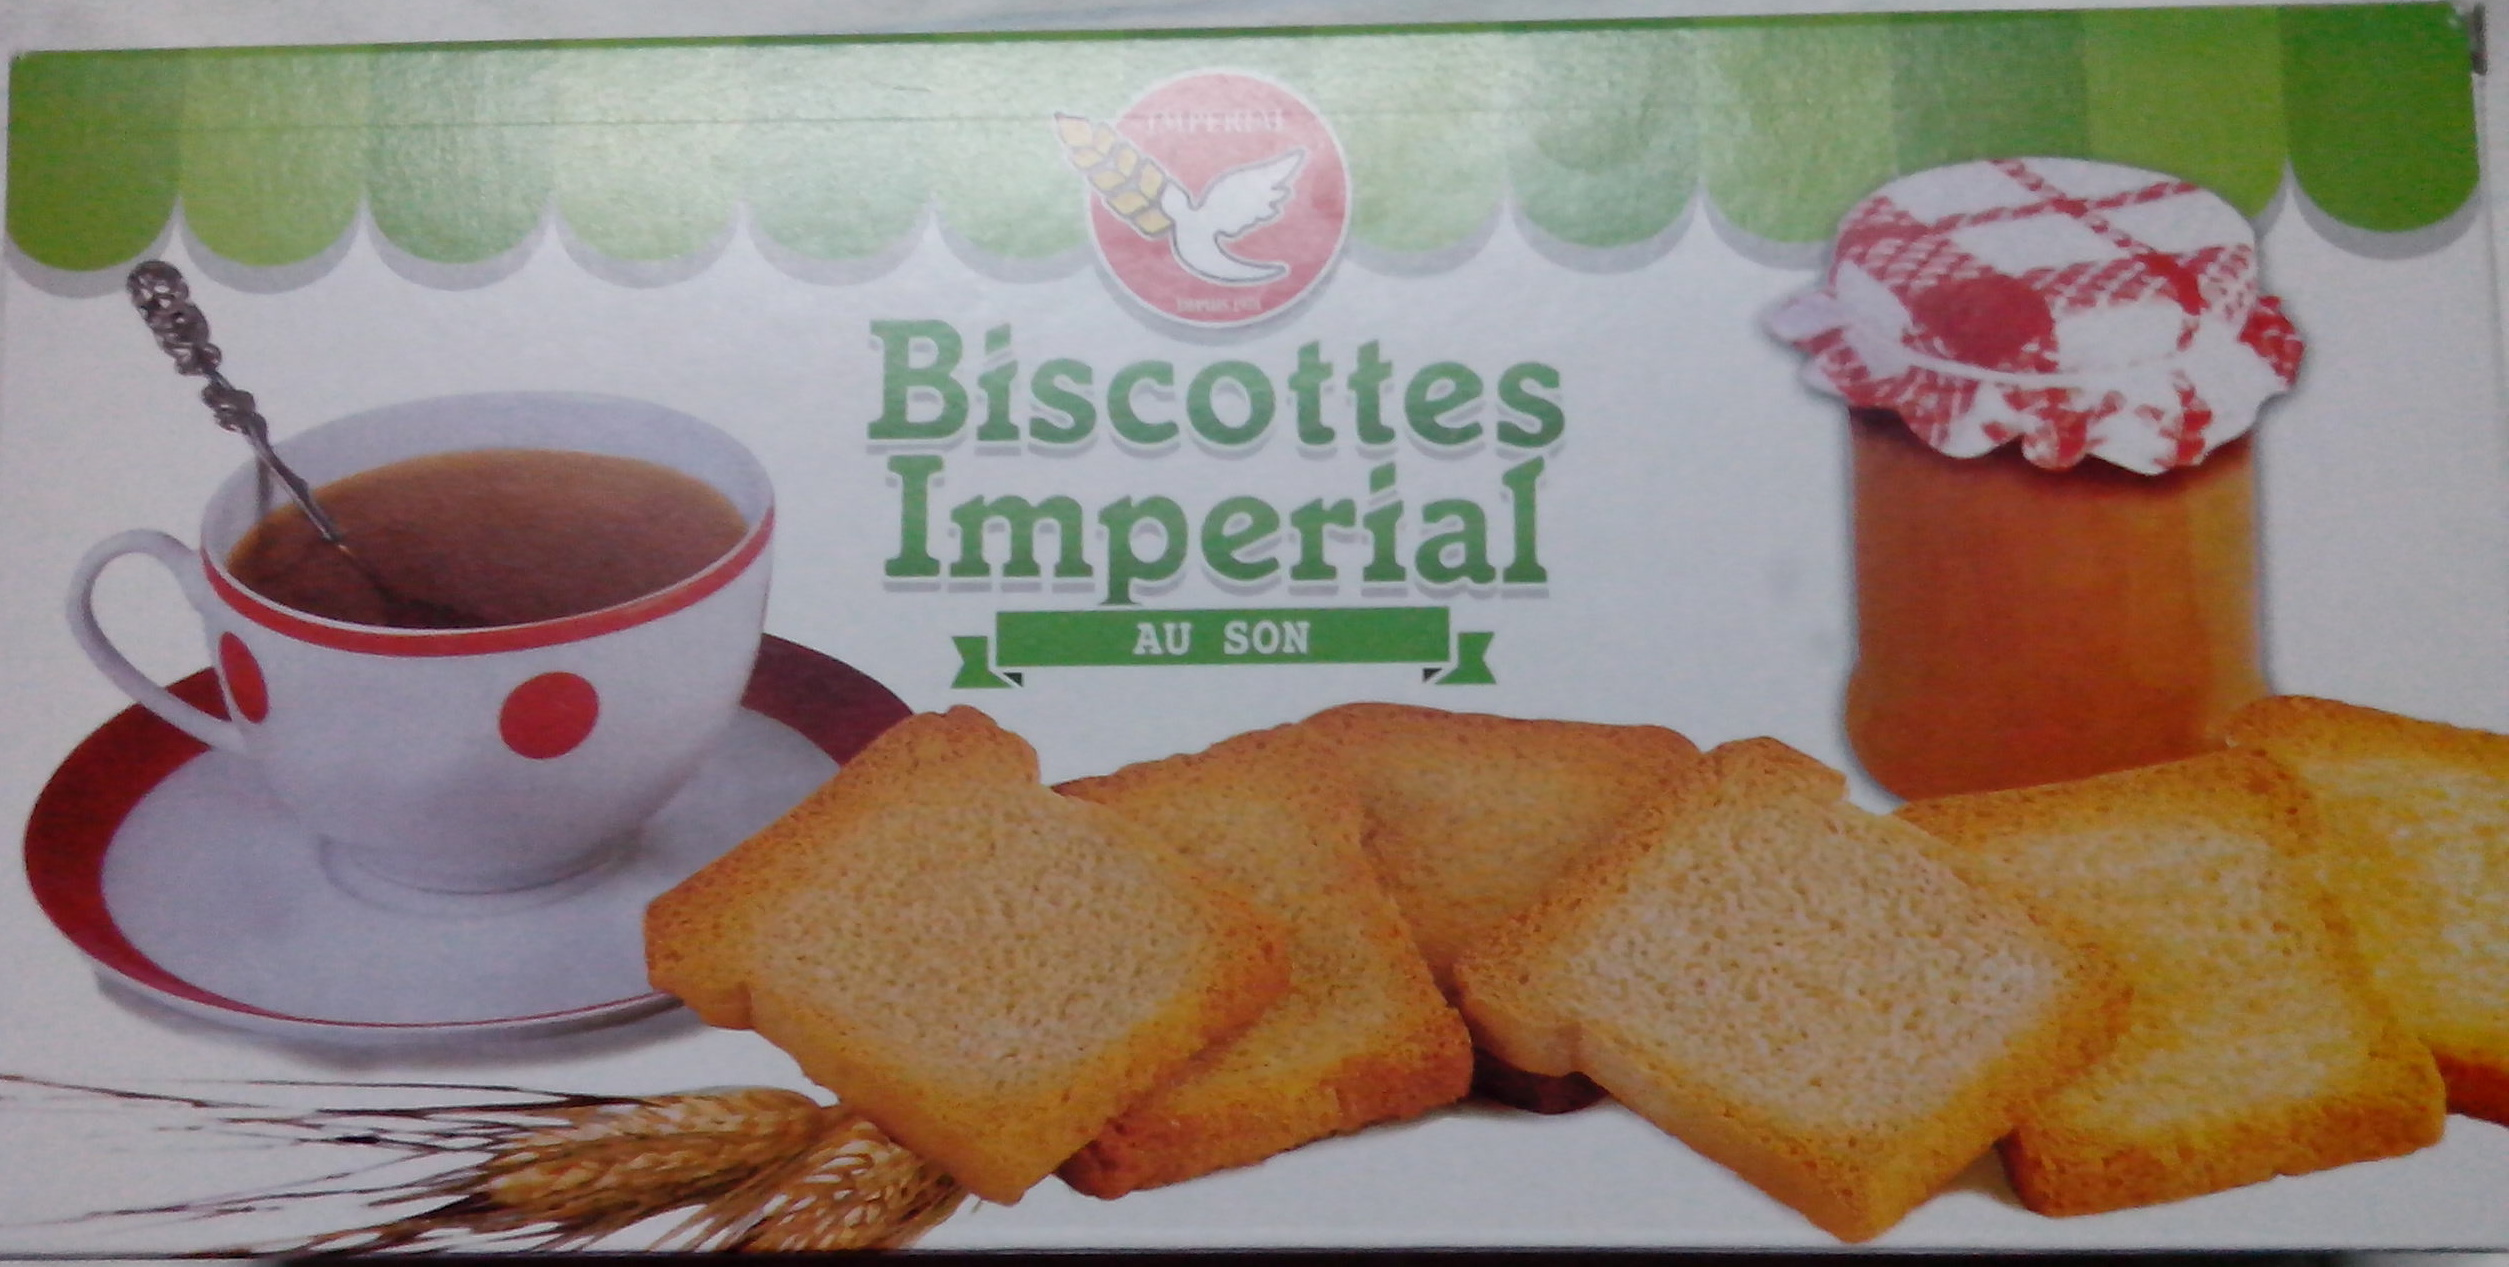 Biscottes Imperial au son - Product